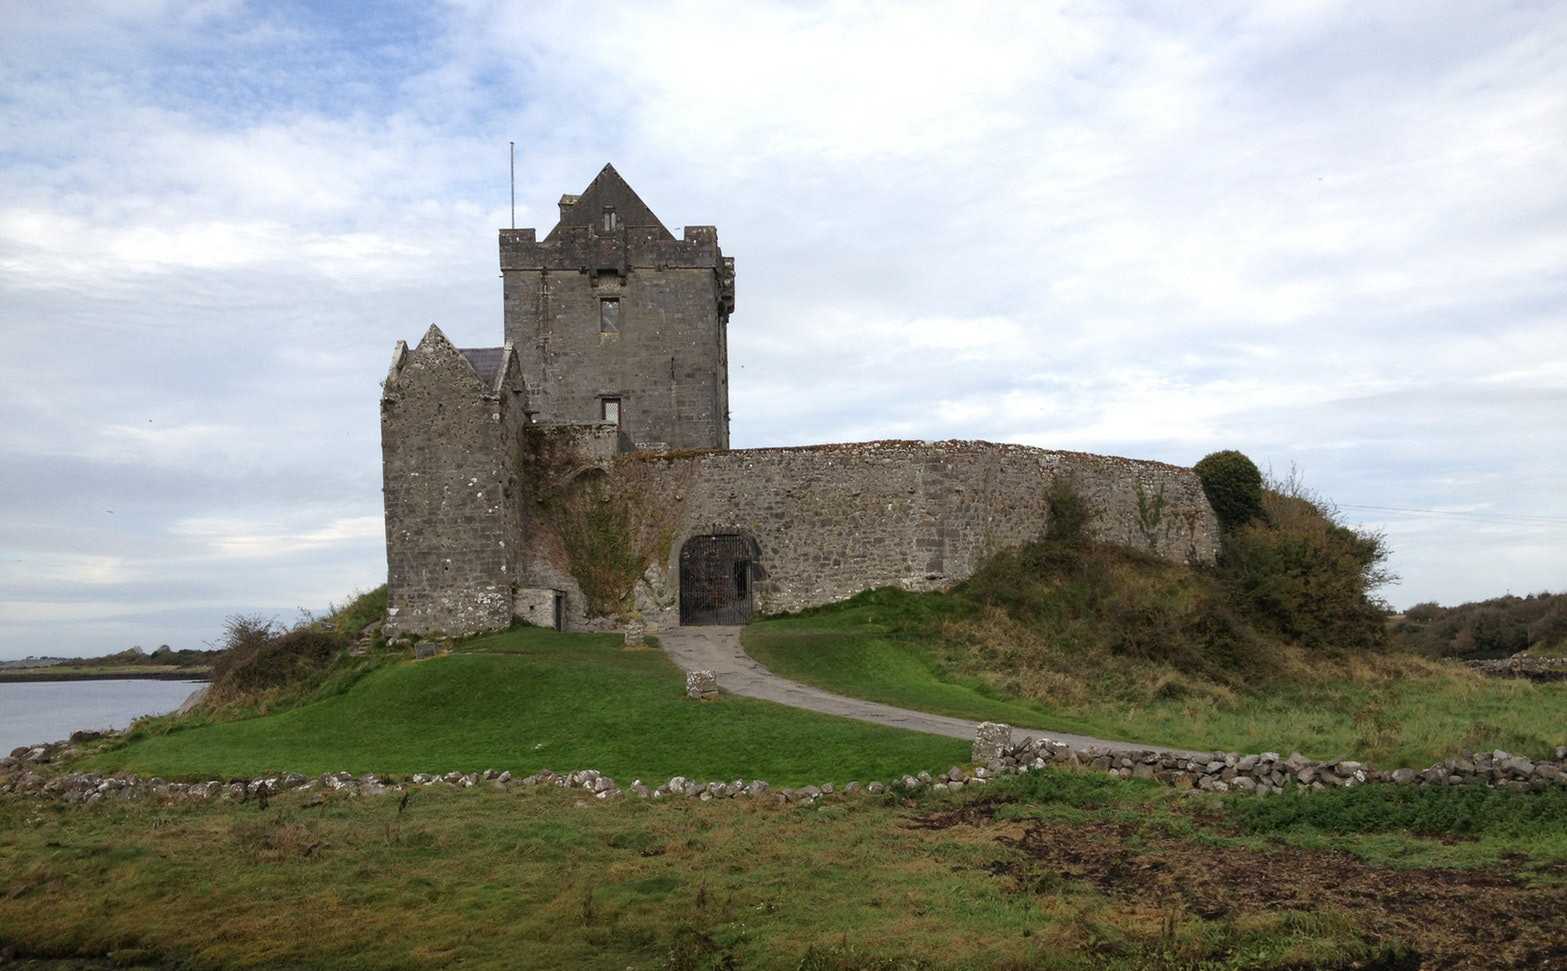 Picture of a dilapidated castle in Ireland.